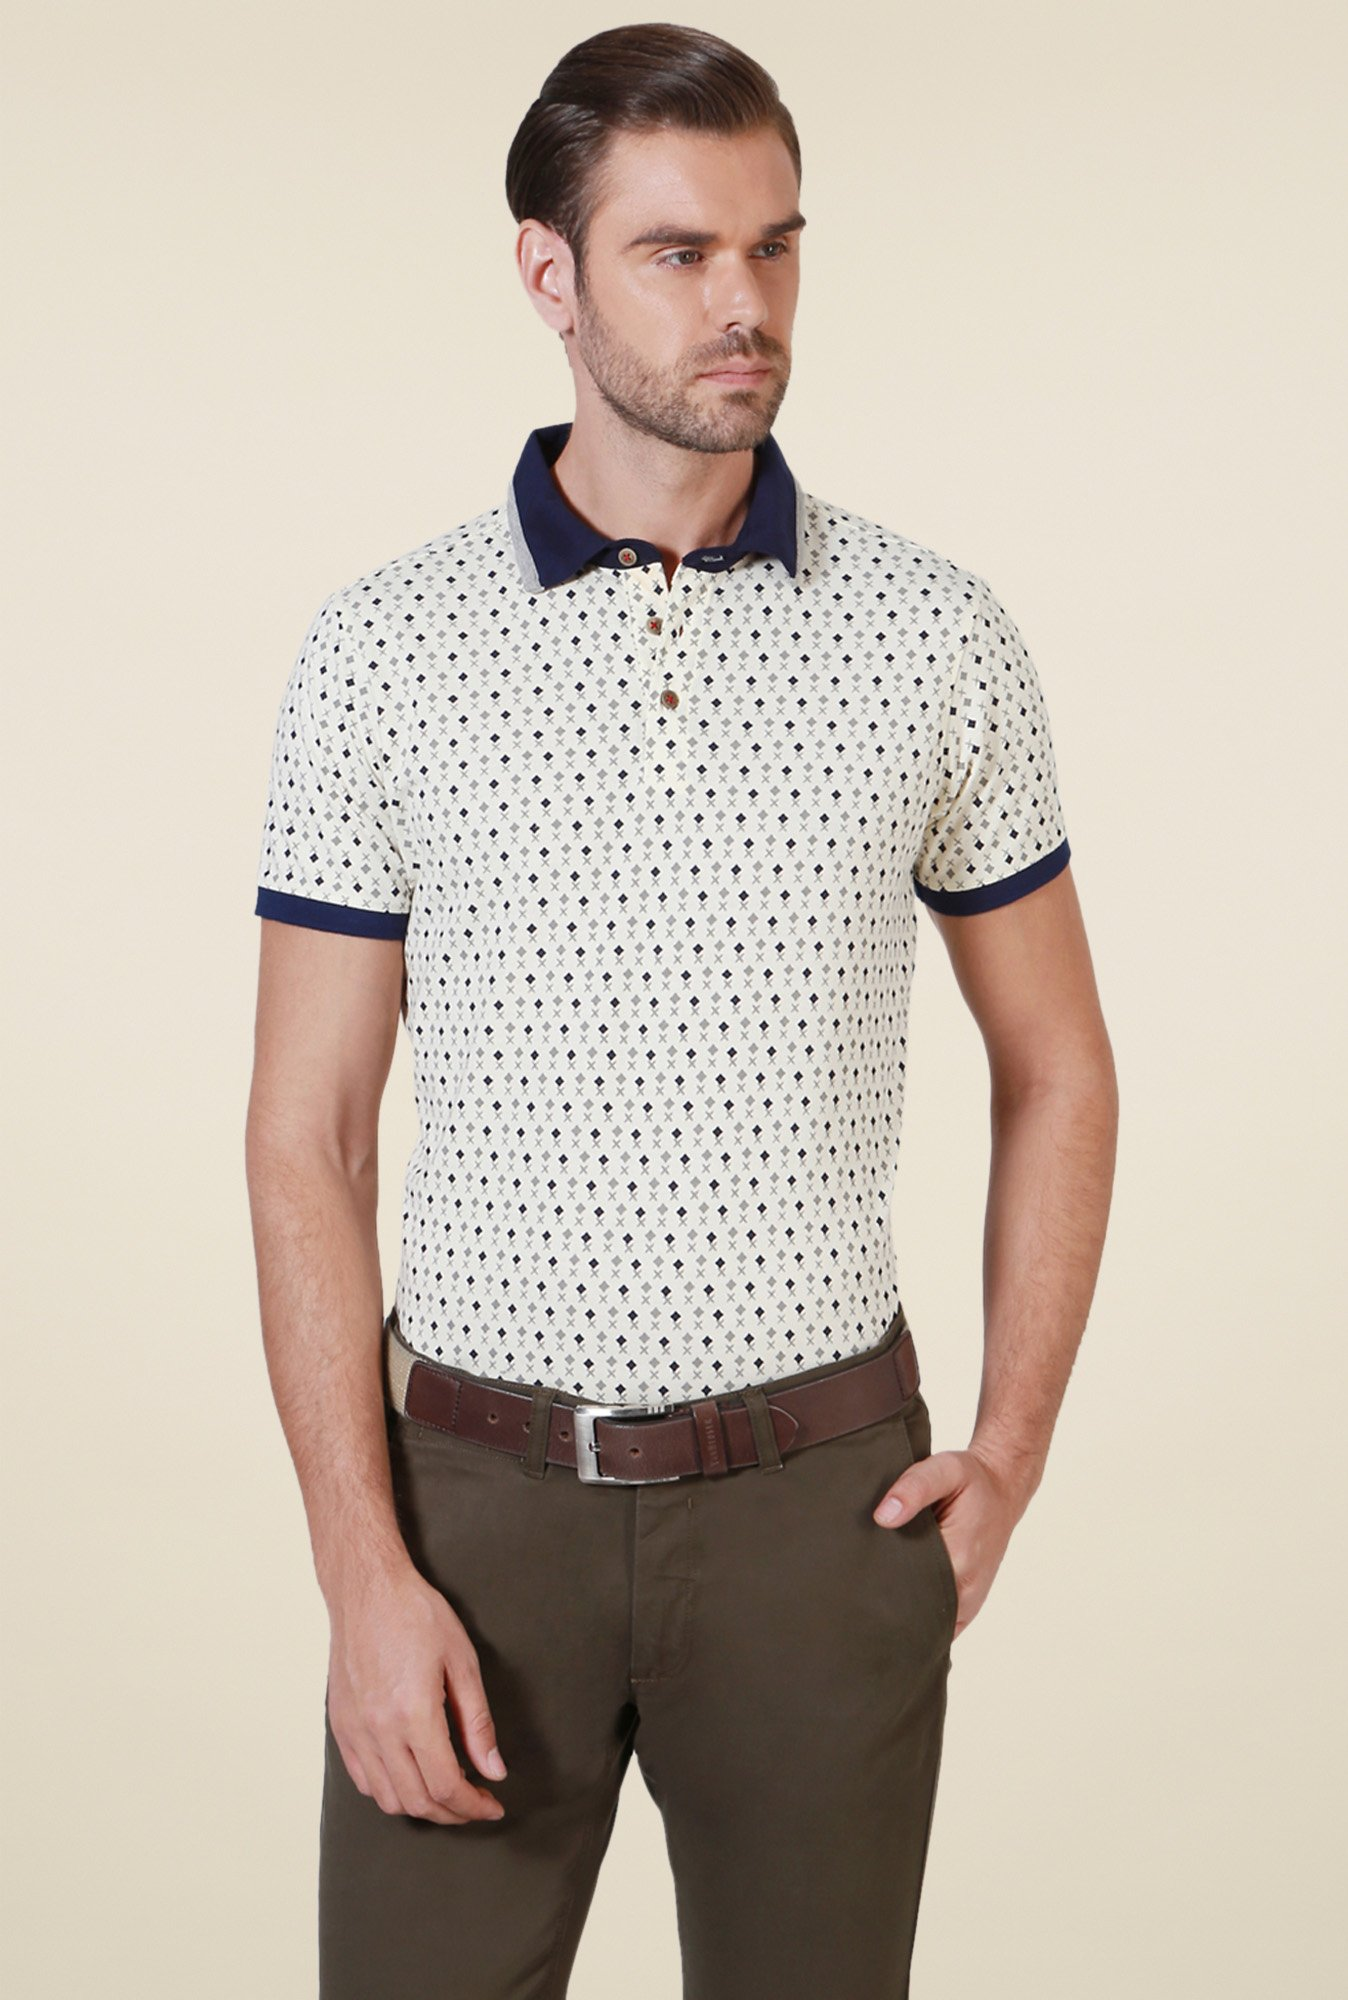 Allen Solly Beige Half Sleeves Polo T-Shirt